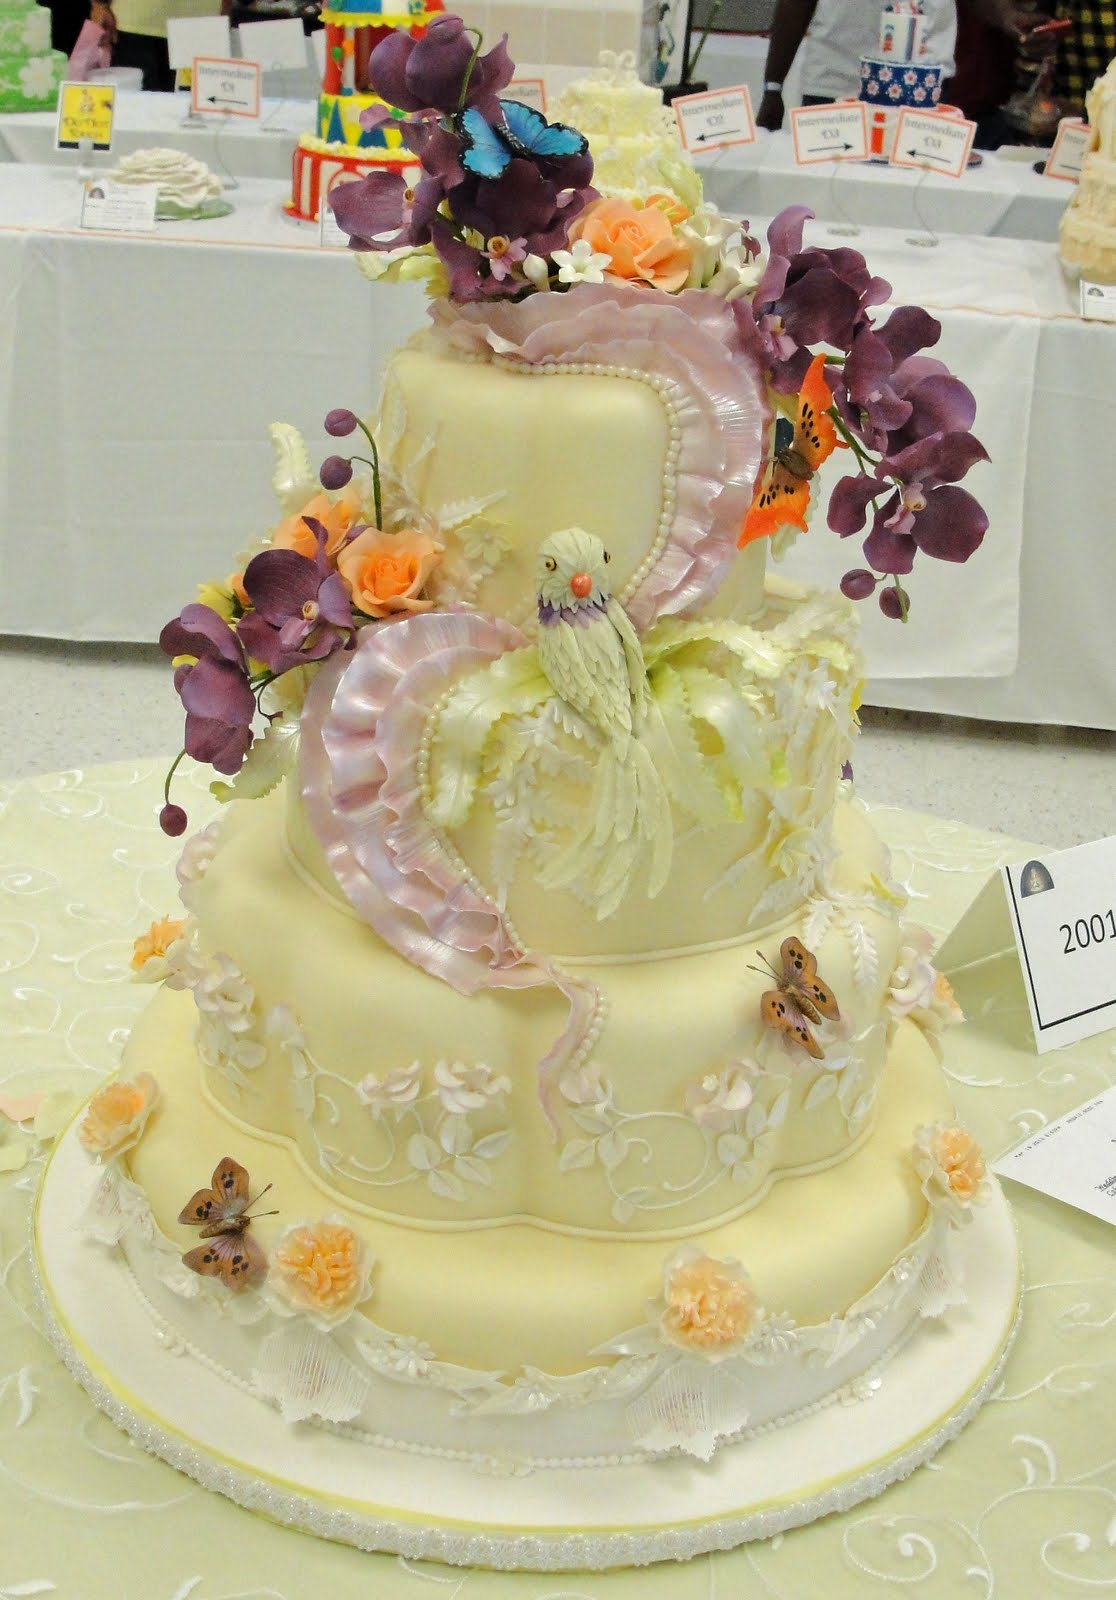 Cake Decorating Competition Tv Show : The Fondanista Files: National Capital Area Cake Show